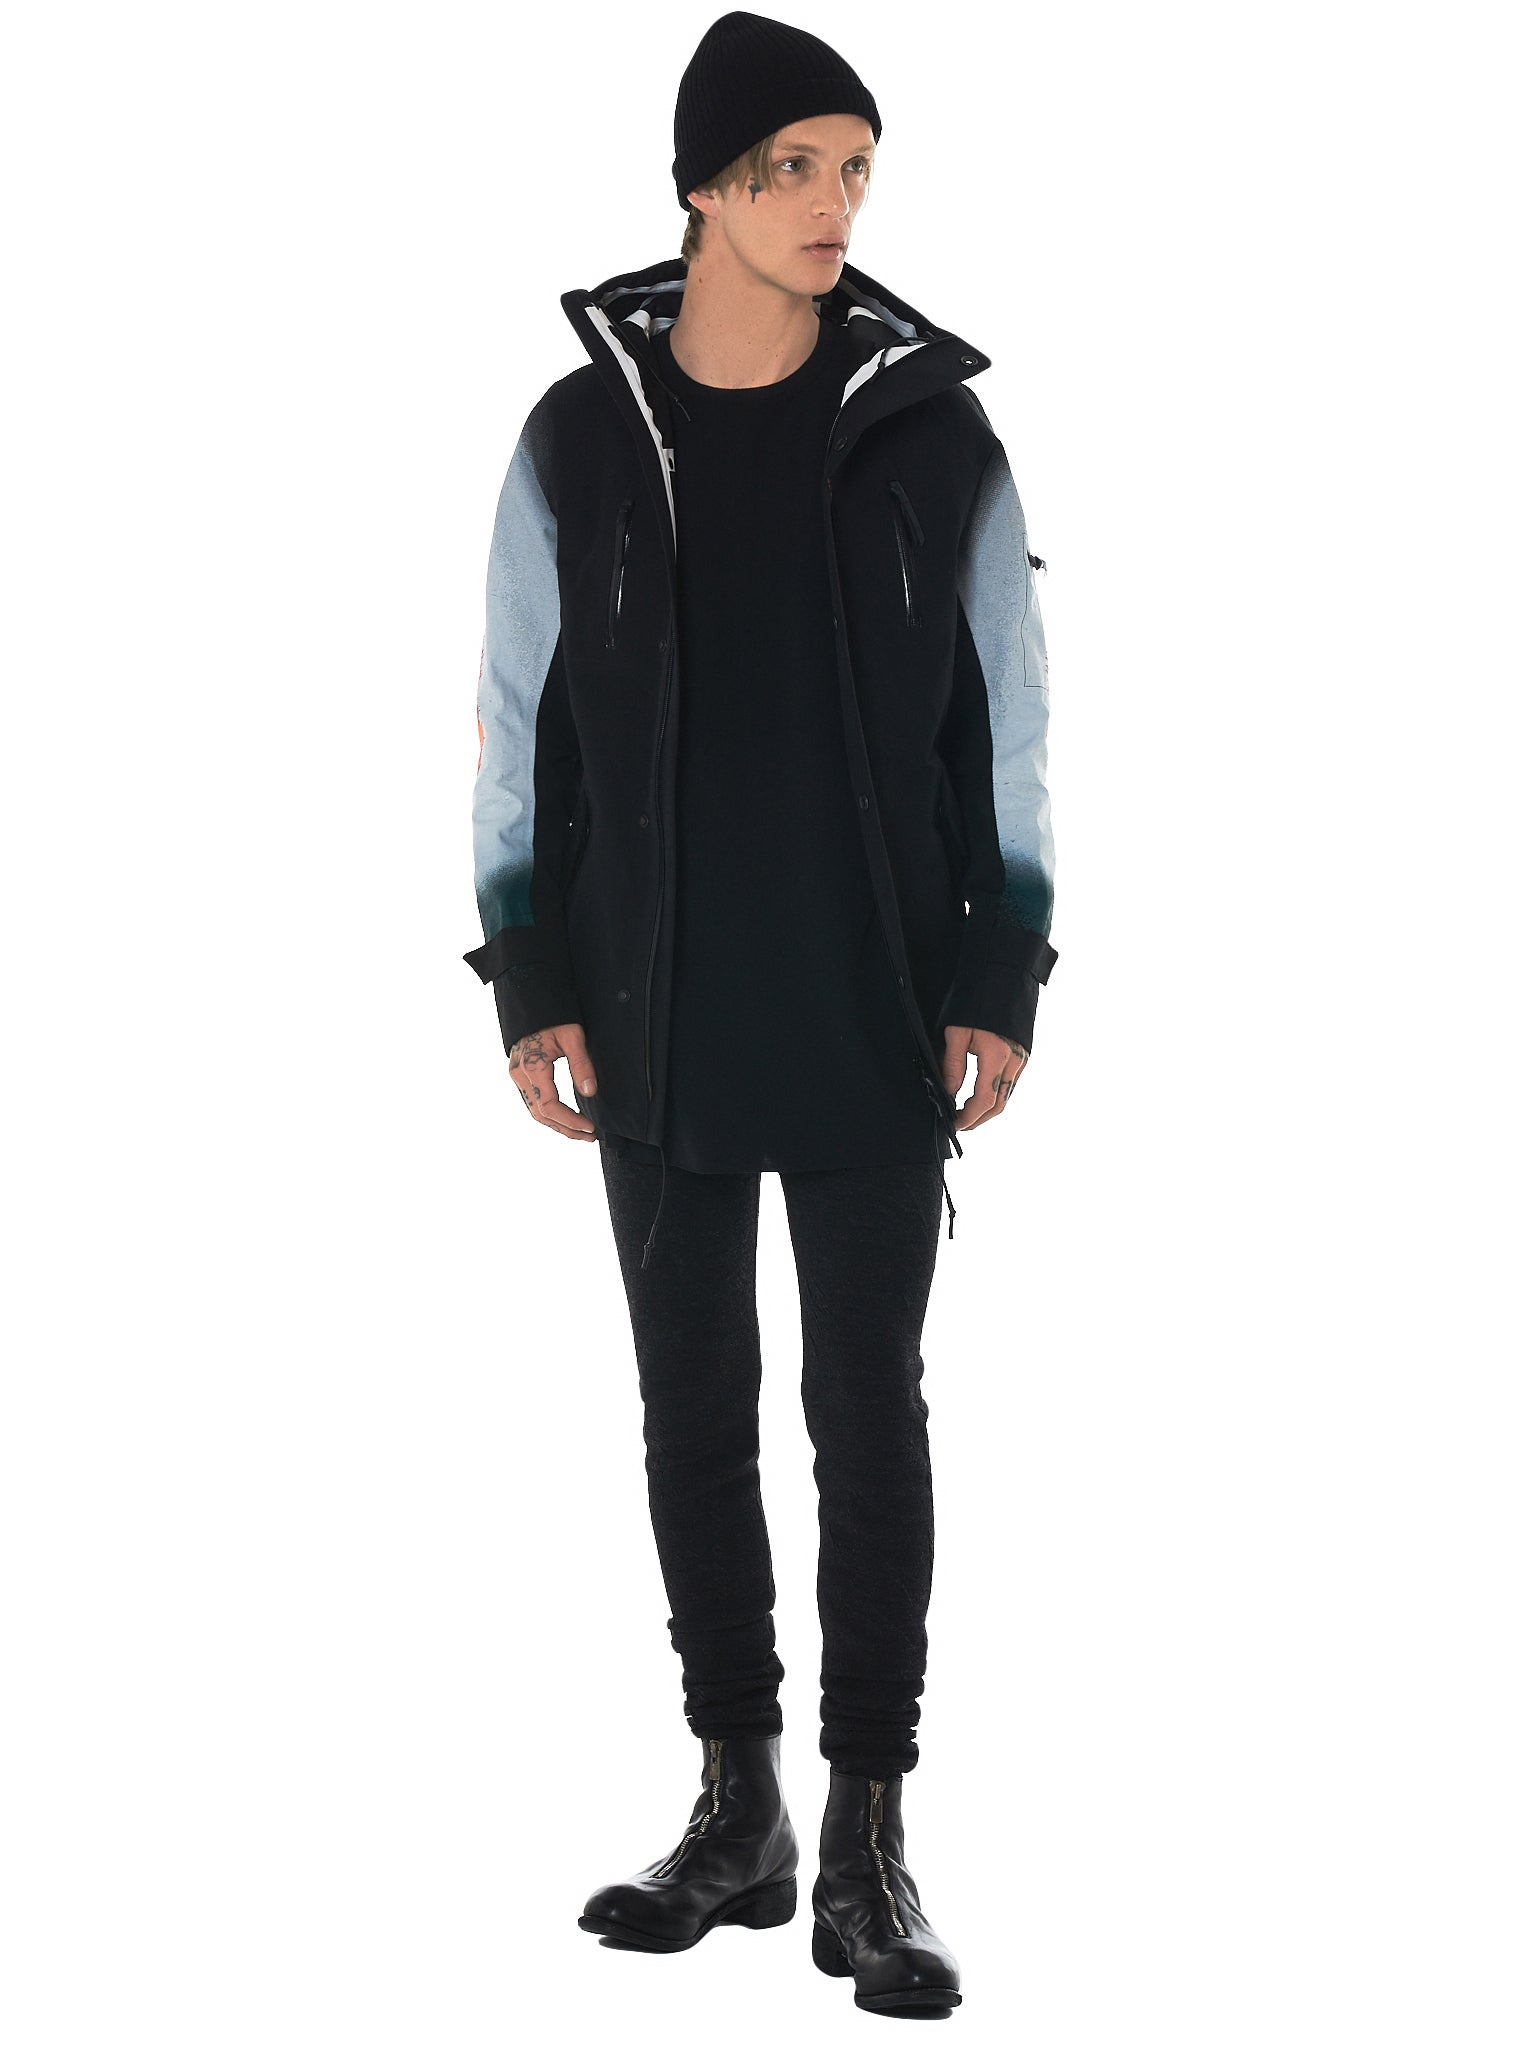 11 By Boris Bidjan Saberi Distortion Hooded Jacket - Hlorenzo Style